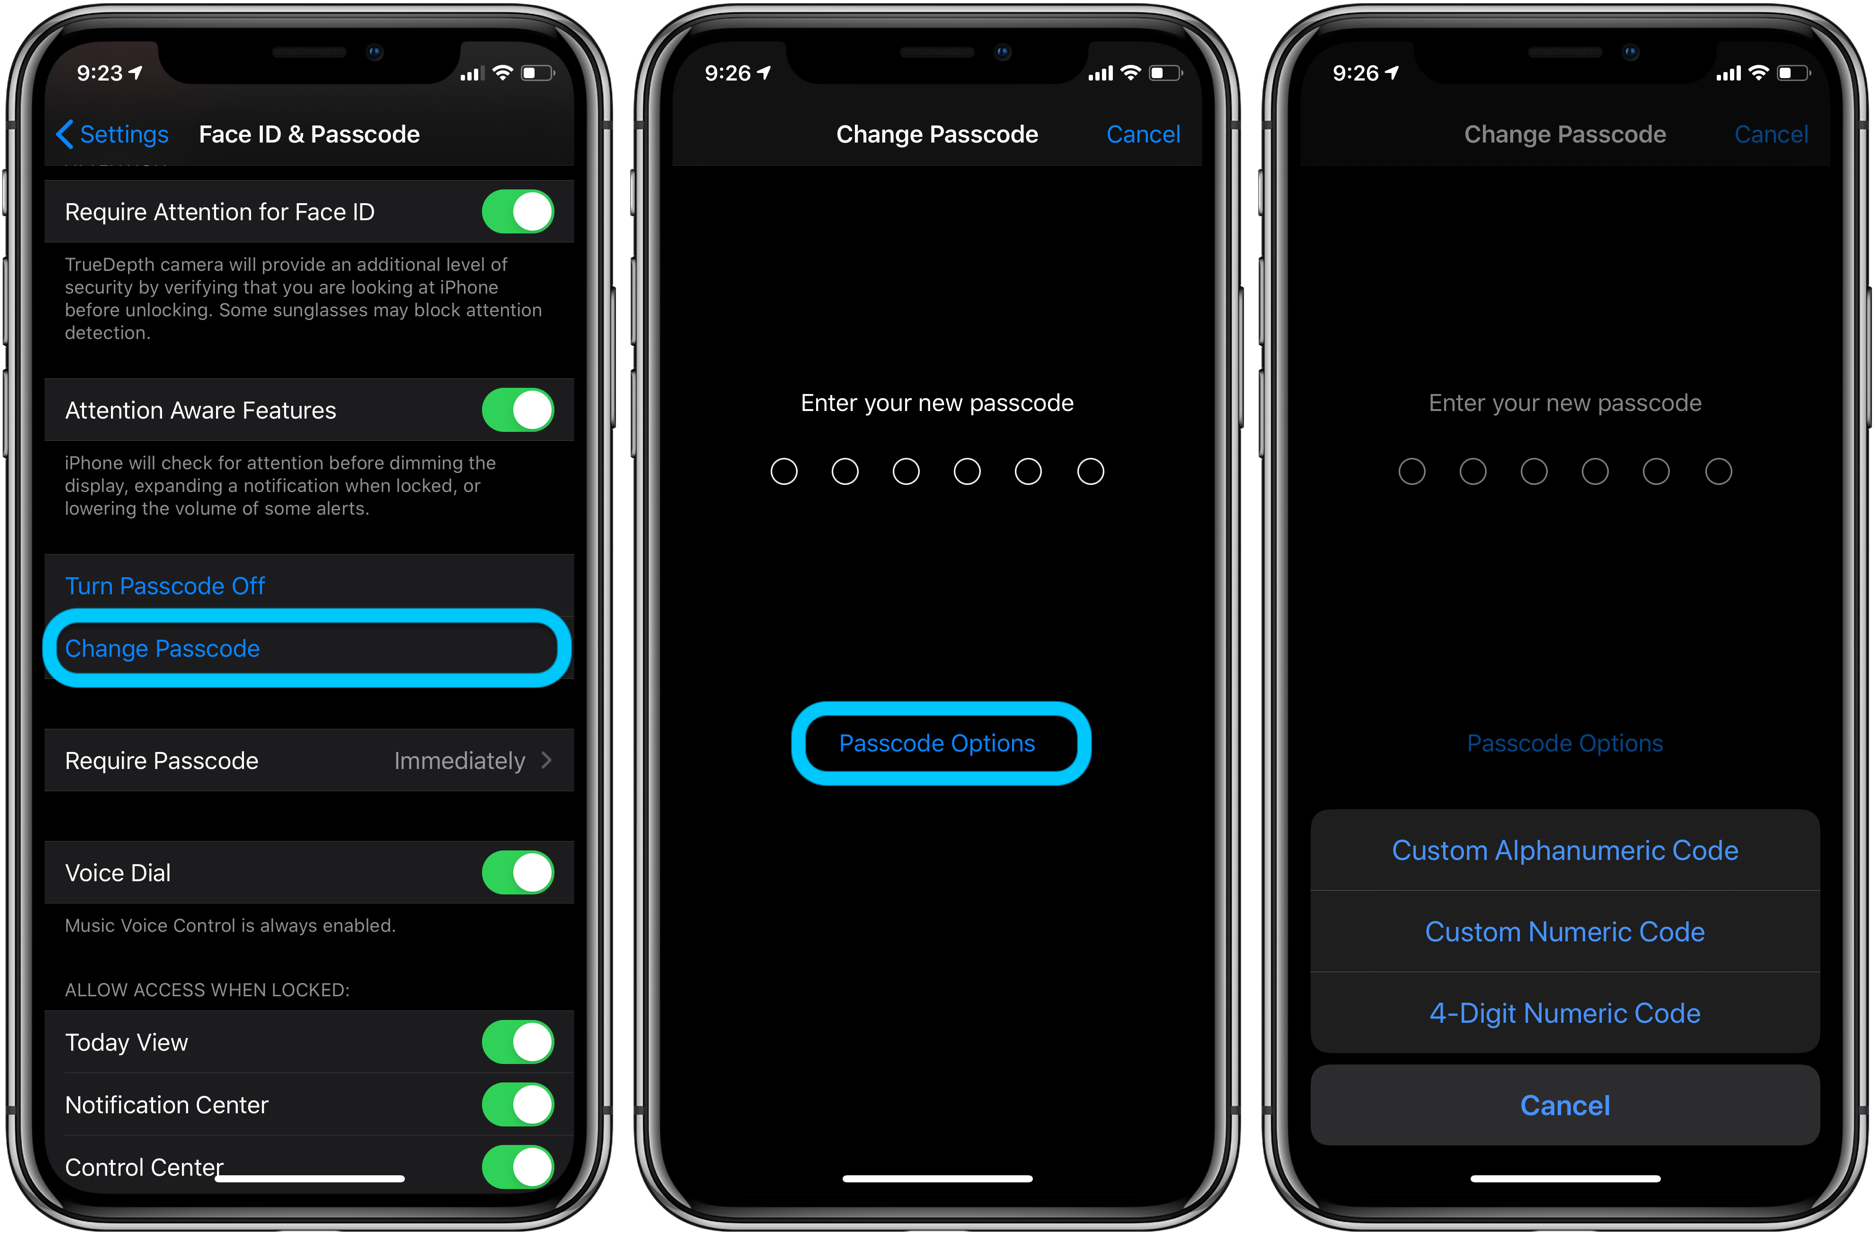 iPhone how to change passcode, skip Face ID walkthrough 3